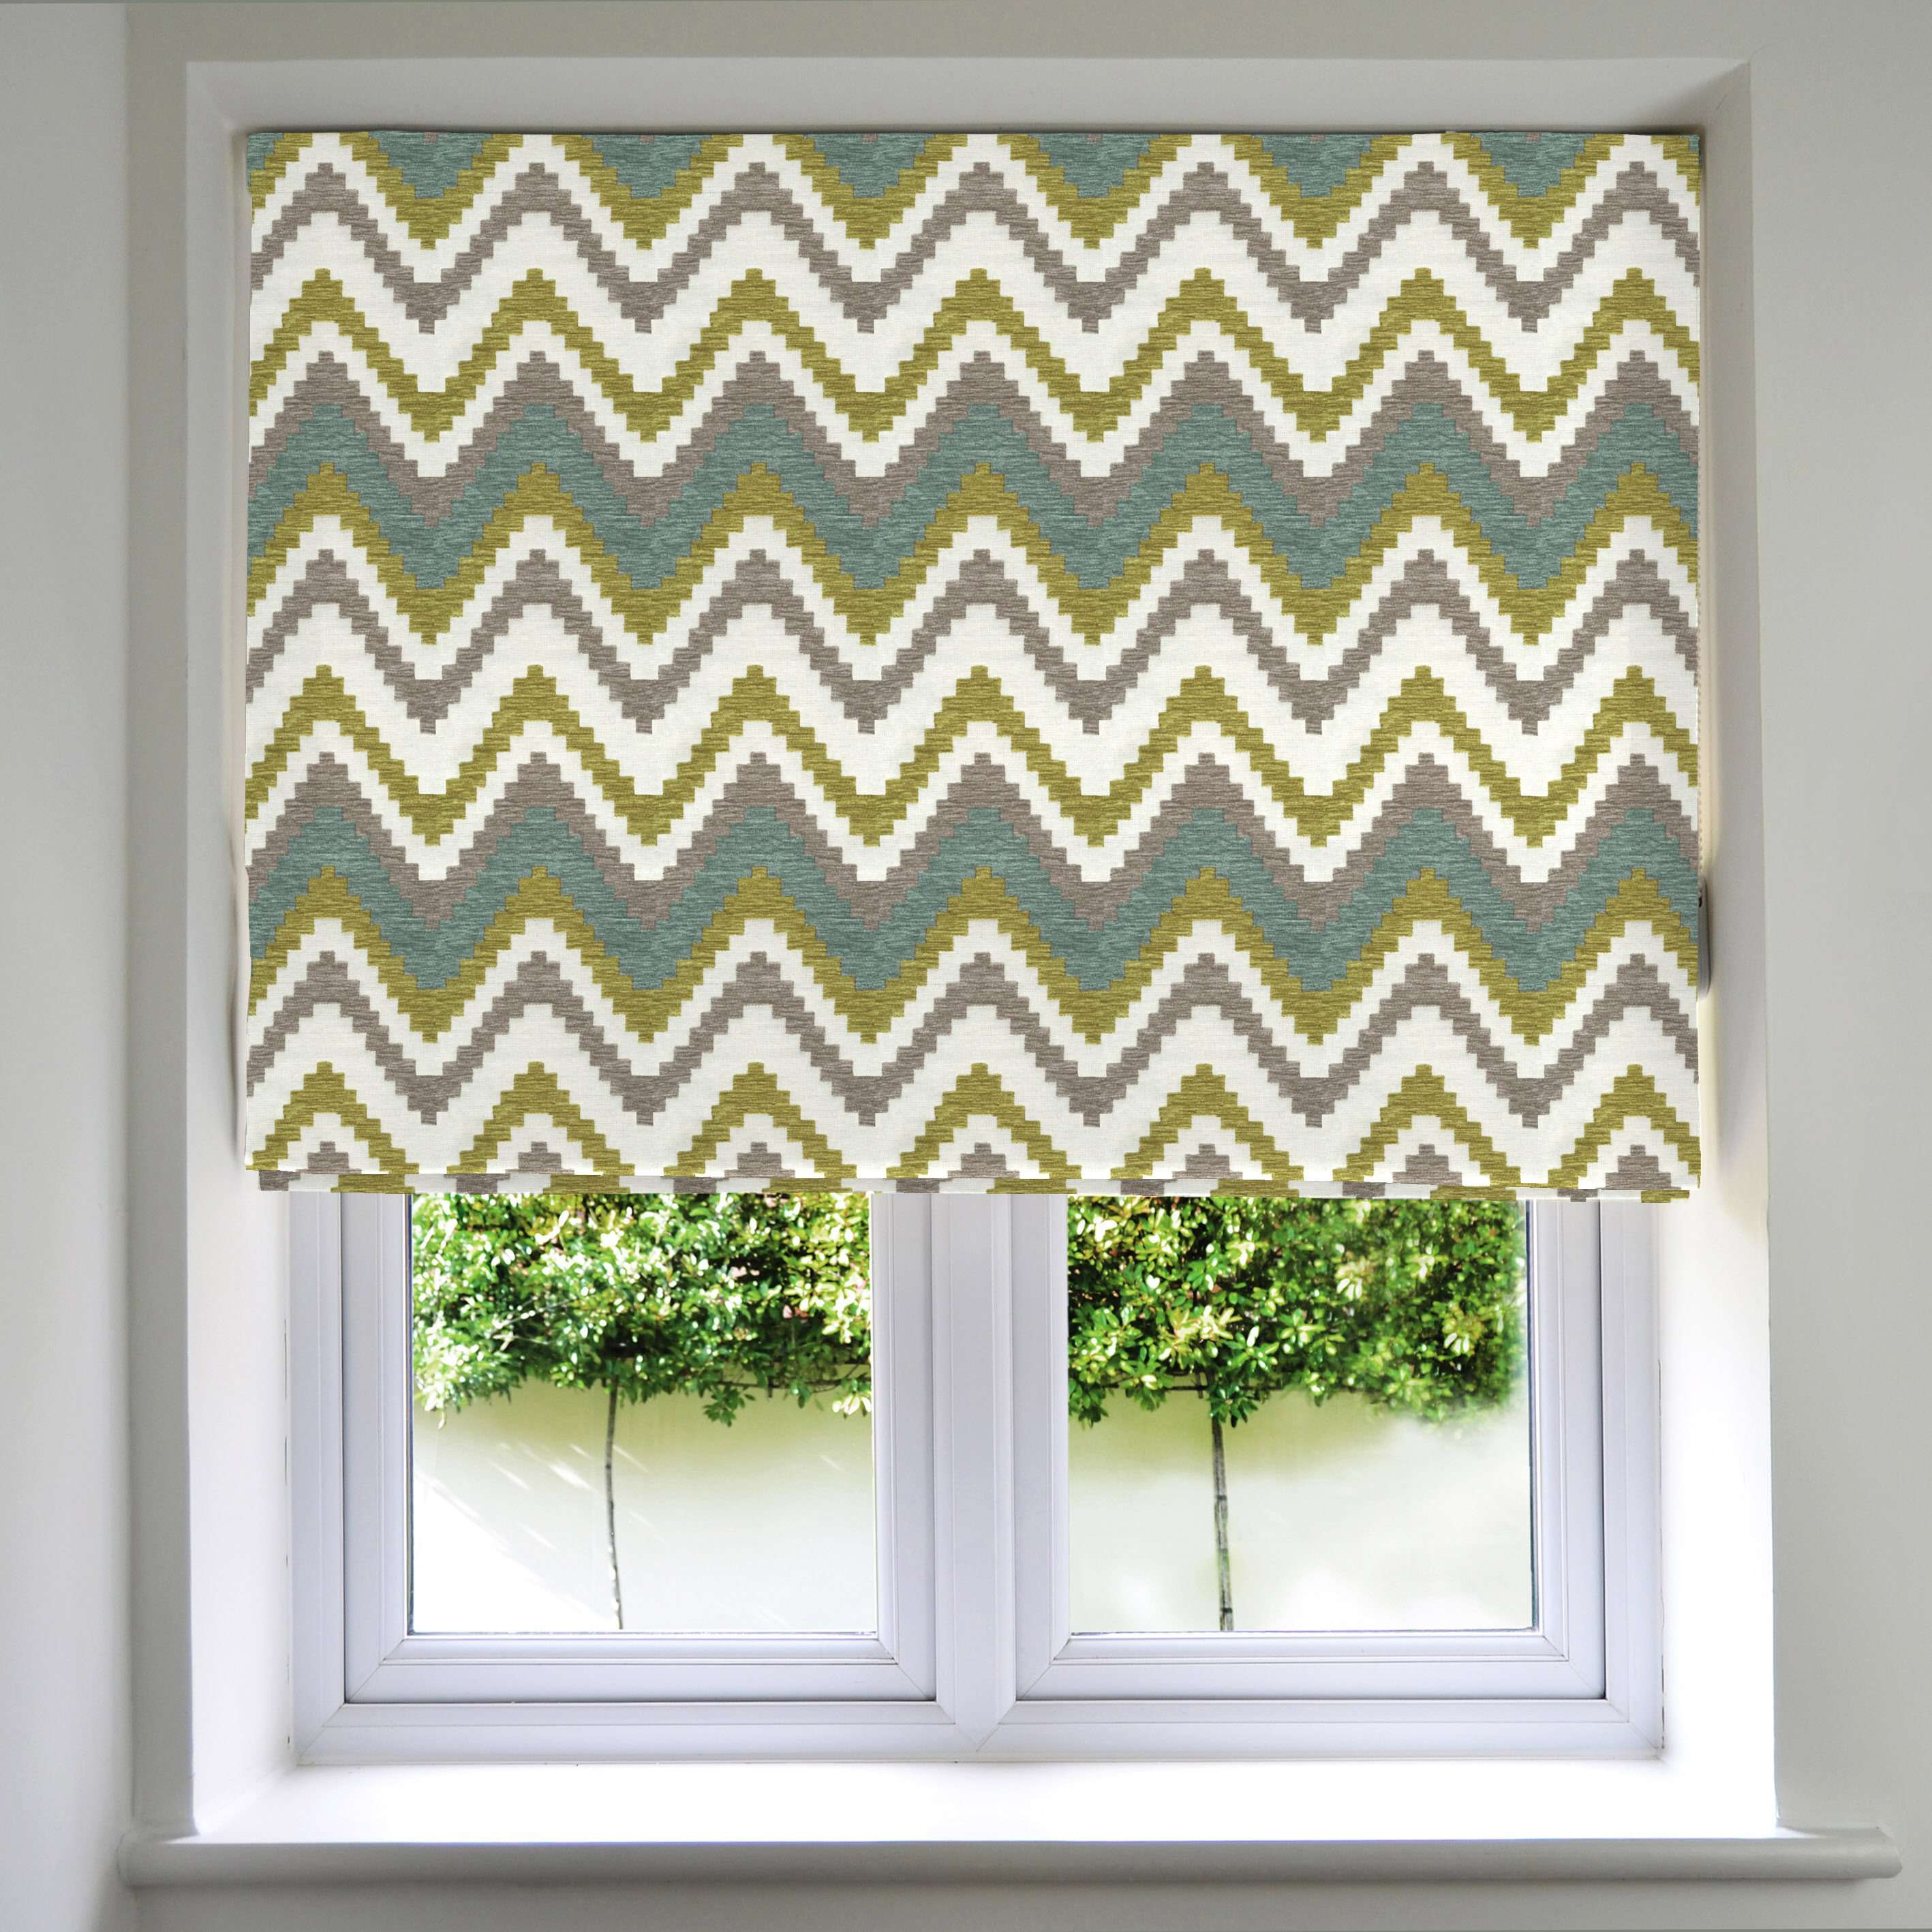 McAlister Textiles Navajo Blue + Lime Green Striped Roman Blind Roman Blinds Standard Lining 130cm x 200cm